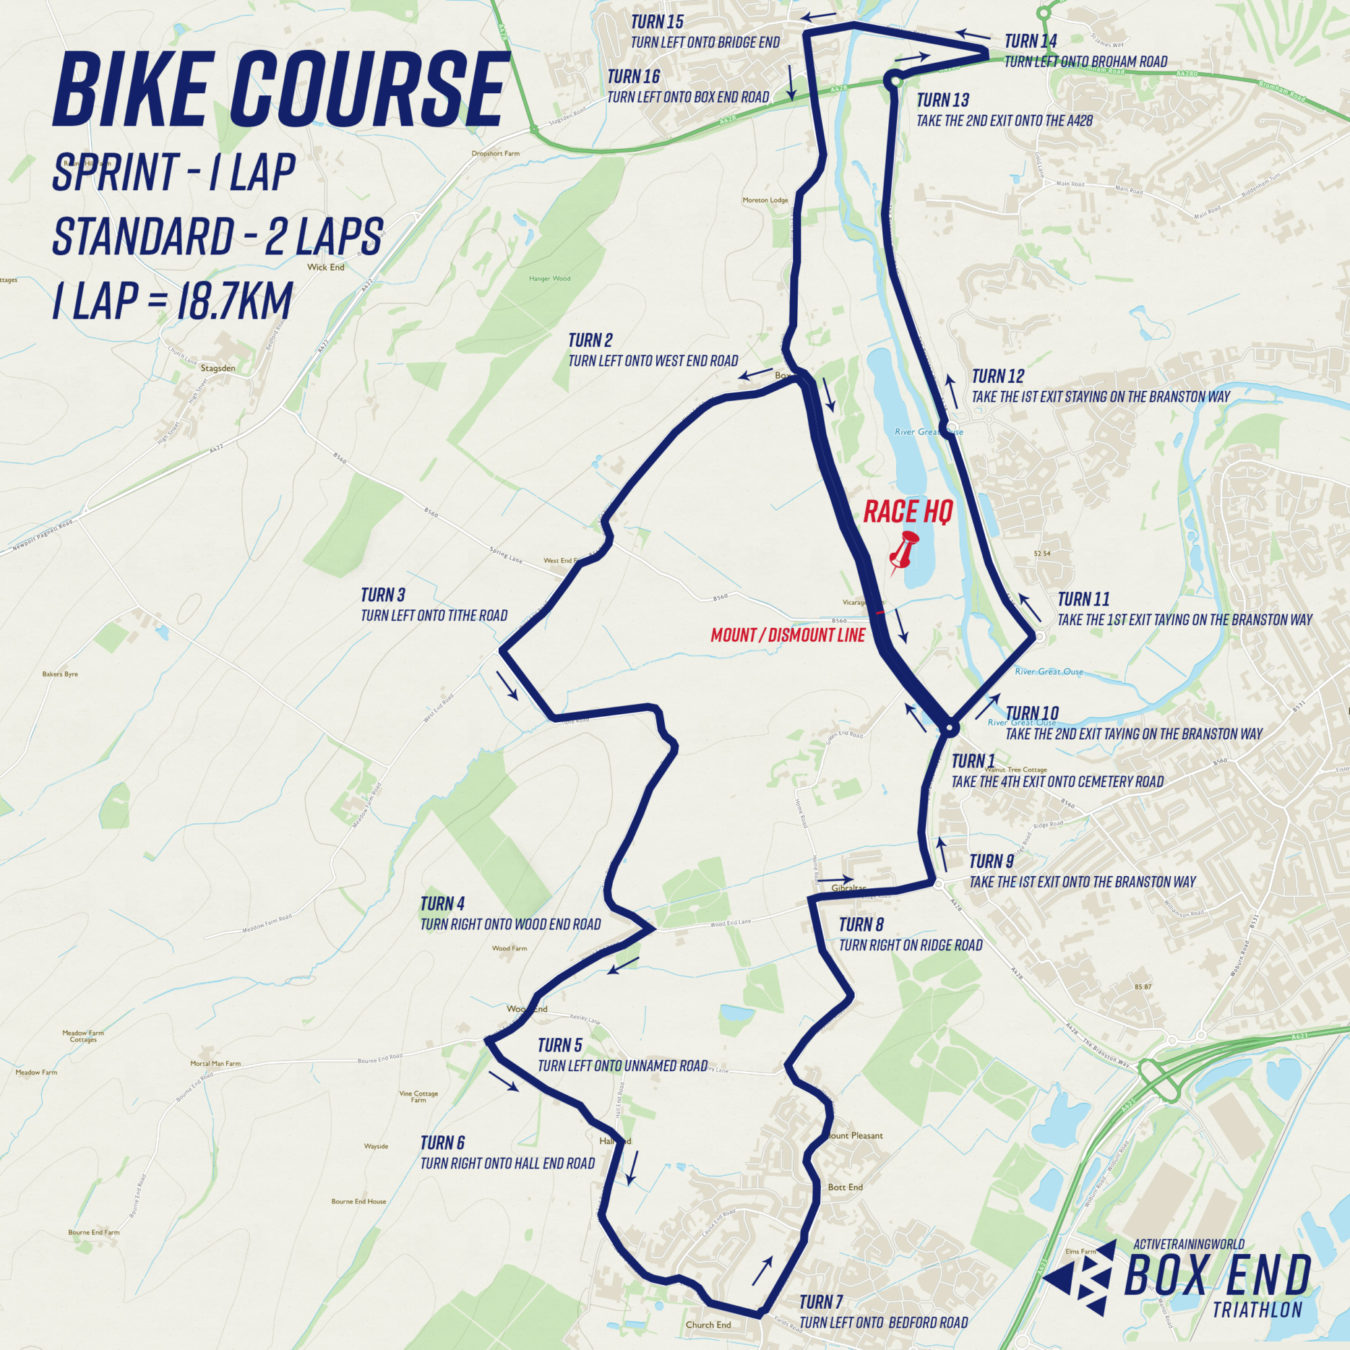 Box End Bike Course